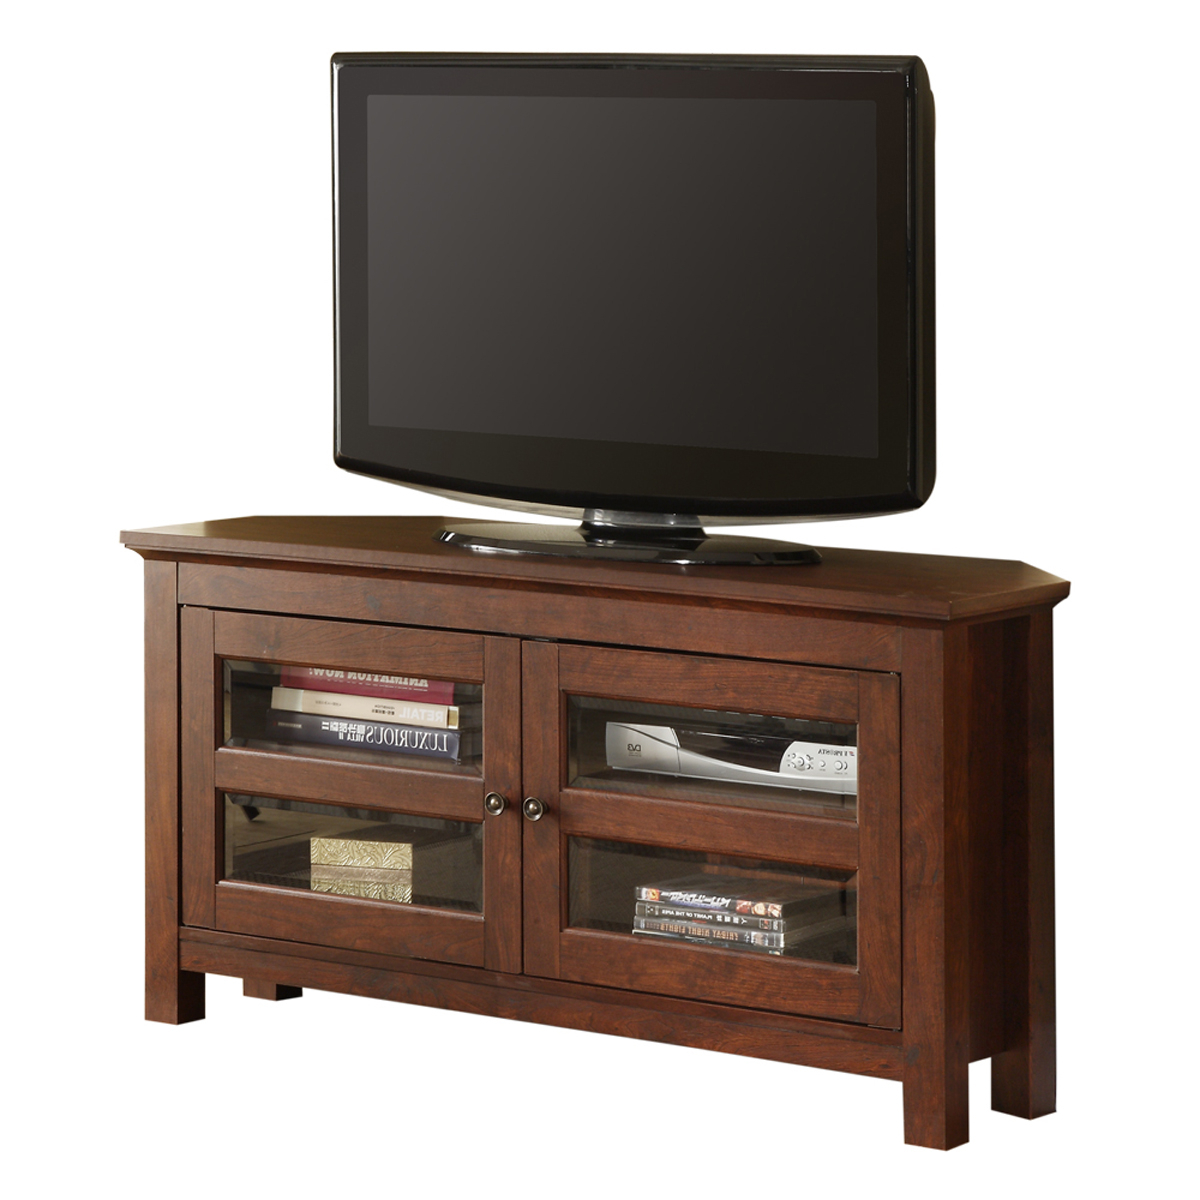 2018 Wooden Corner Tv Stand With Small Cabinet Doors And Silver Handle For Silver Corner Tv Stands (View 2 of 20)